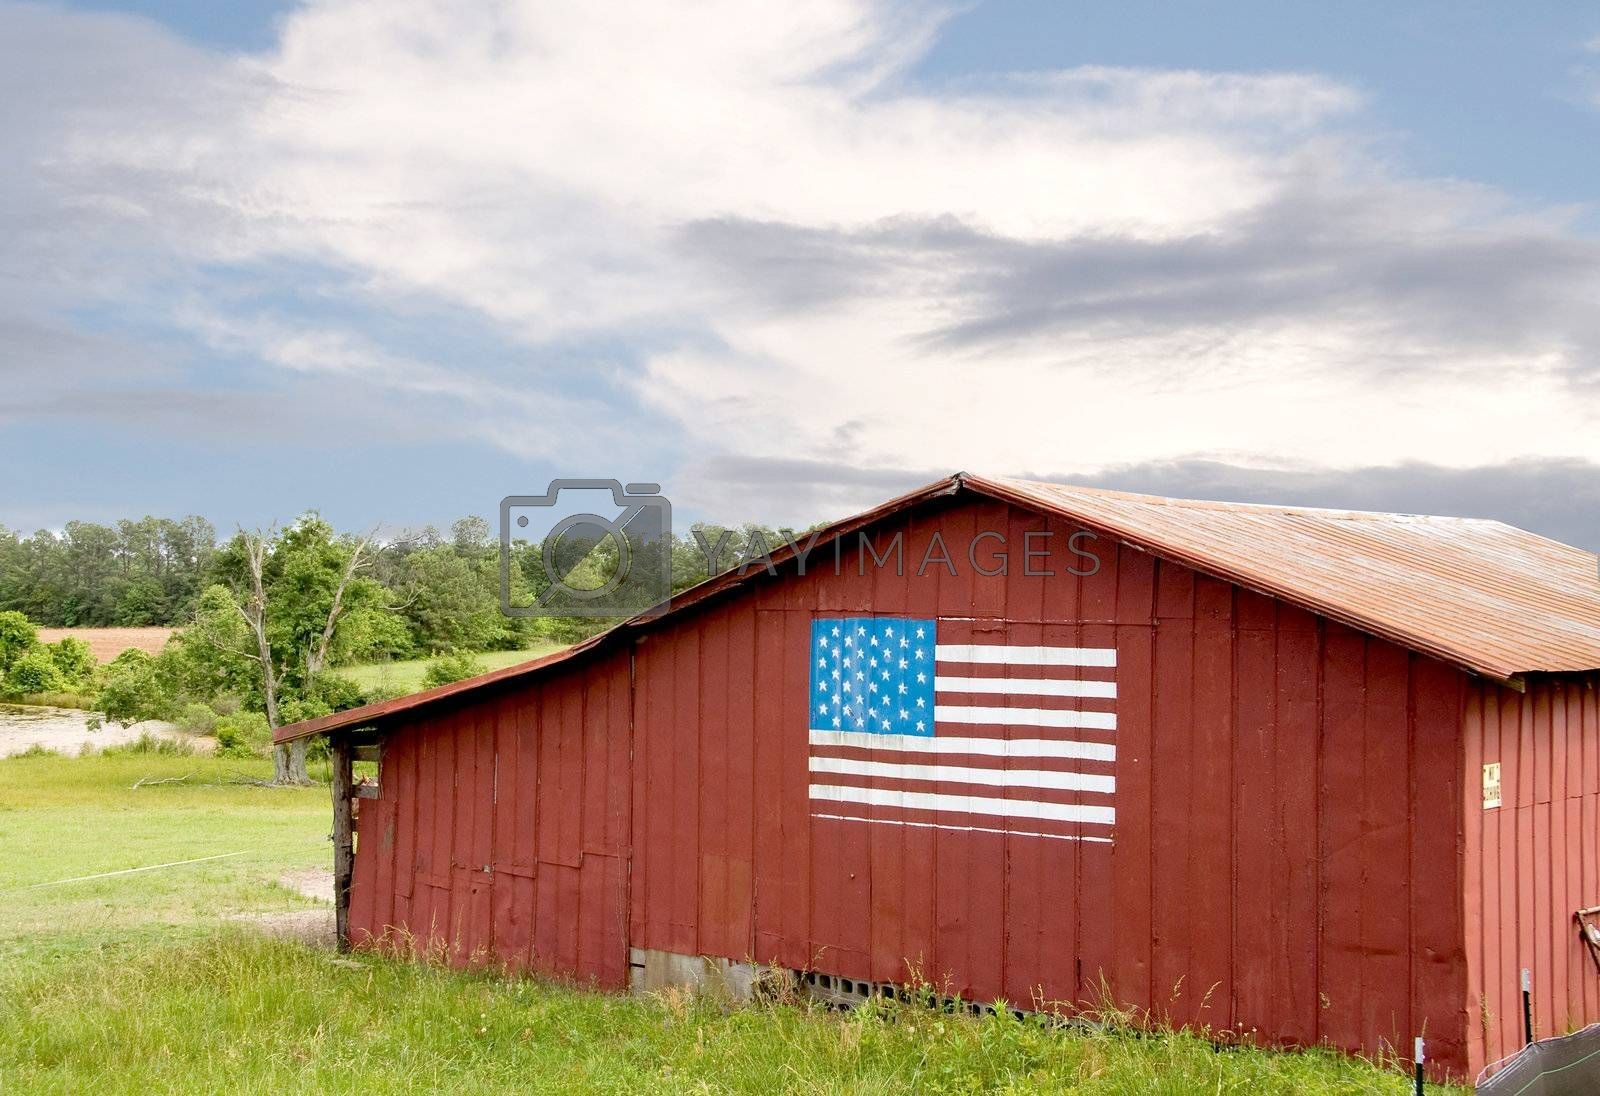 Royalty free image of American Flag on a Barn by robeo